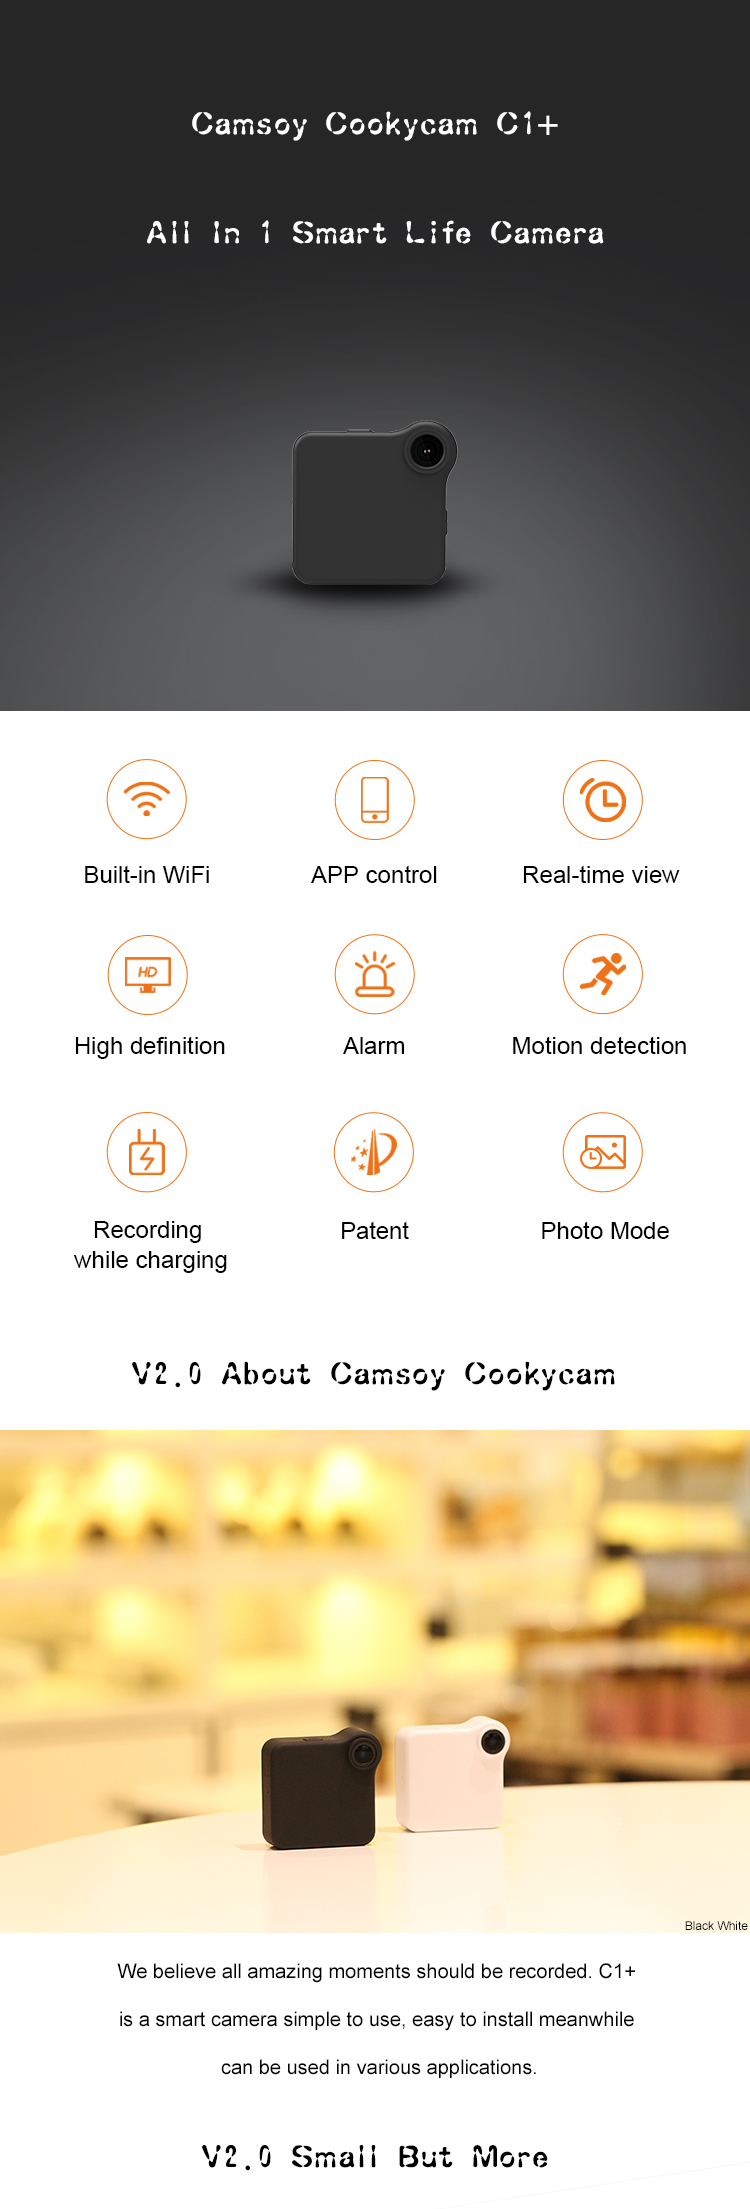 C1+ Camsoy Cookycam WiFi Mini Camera   (1)